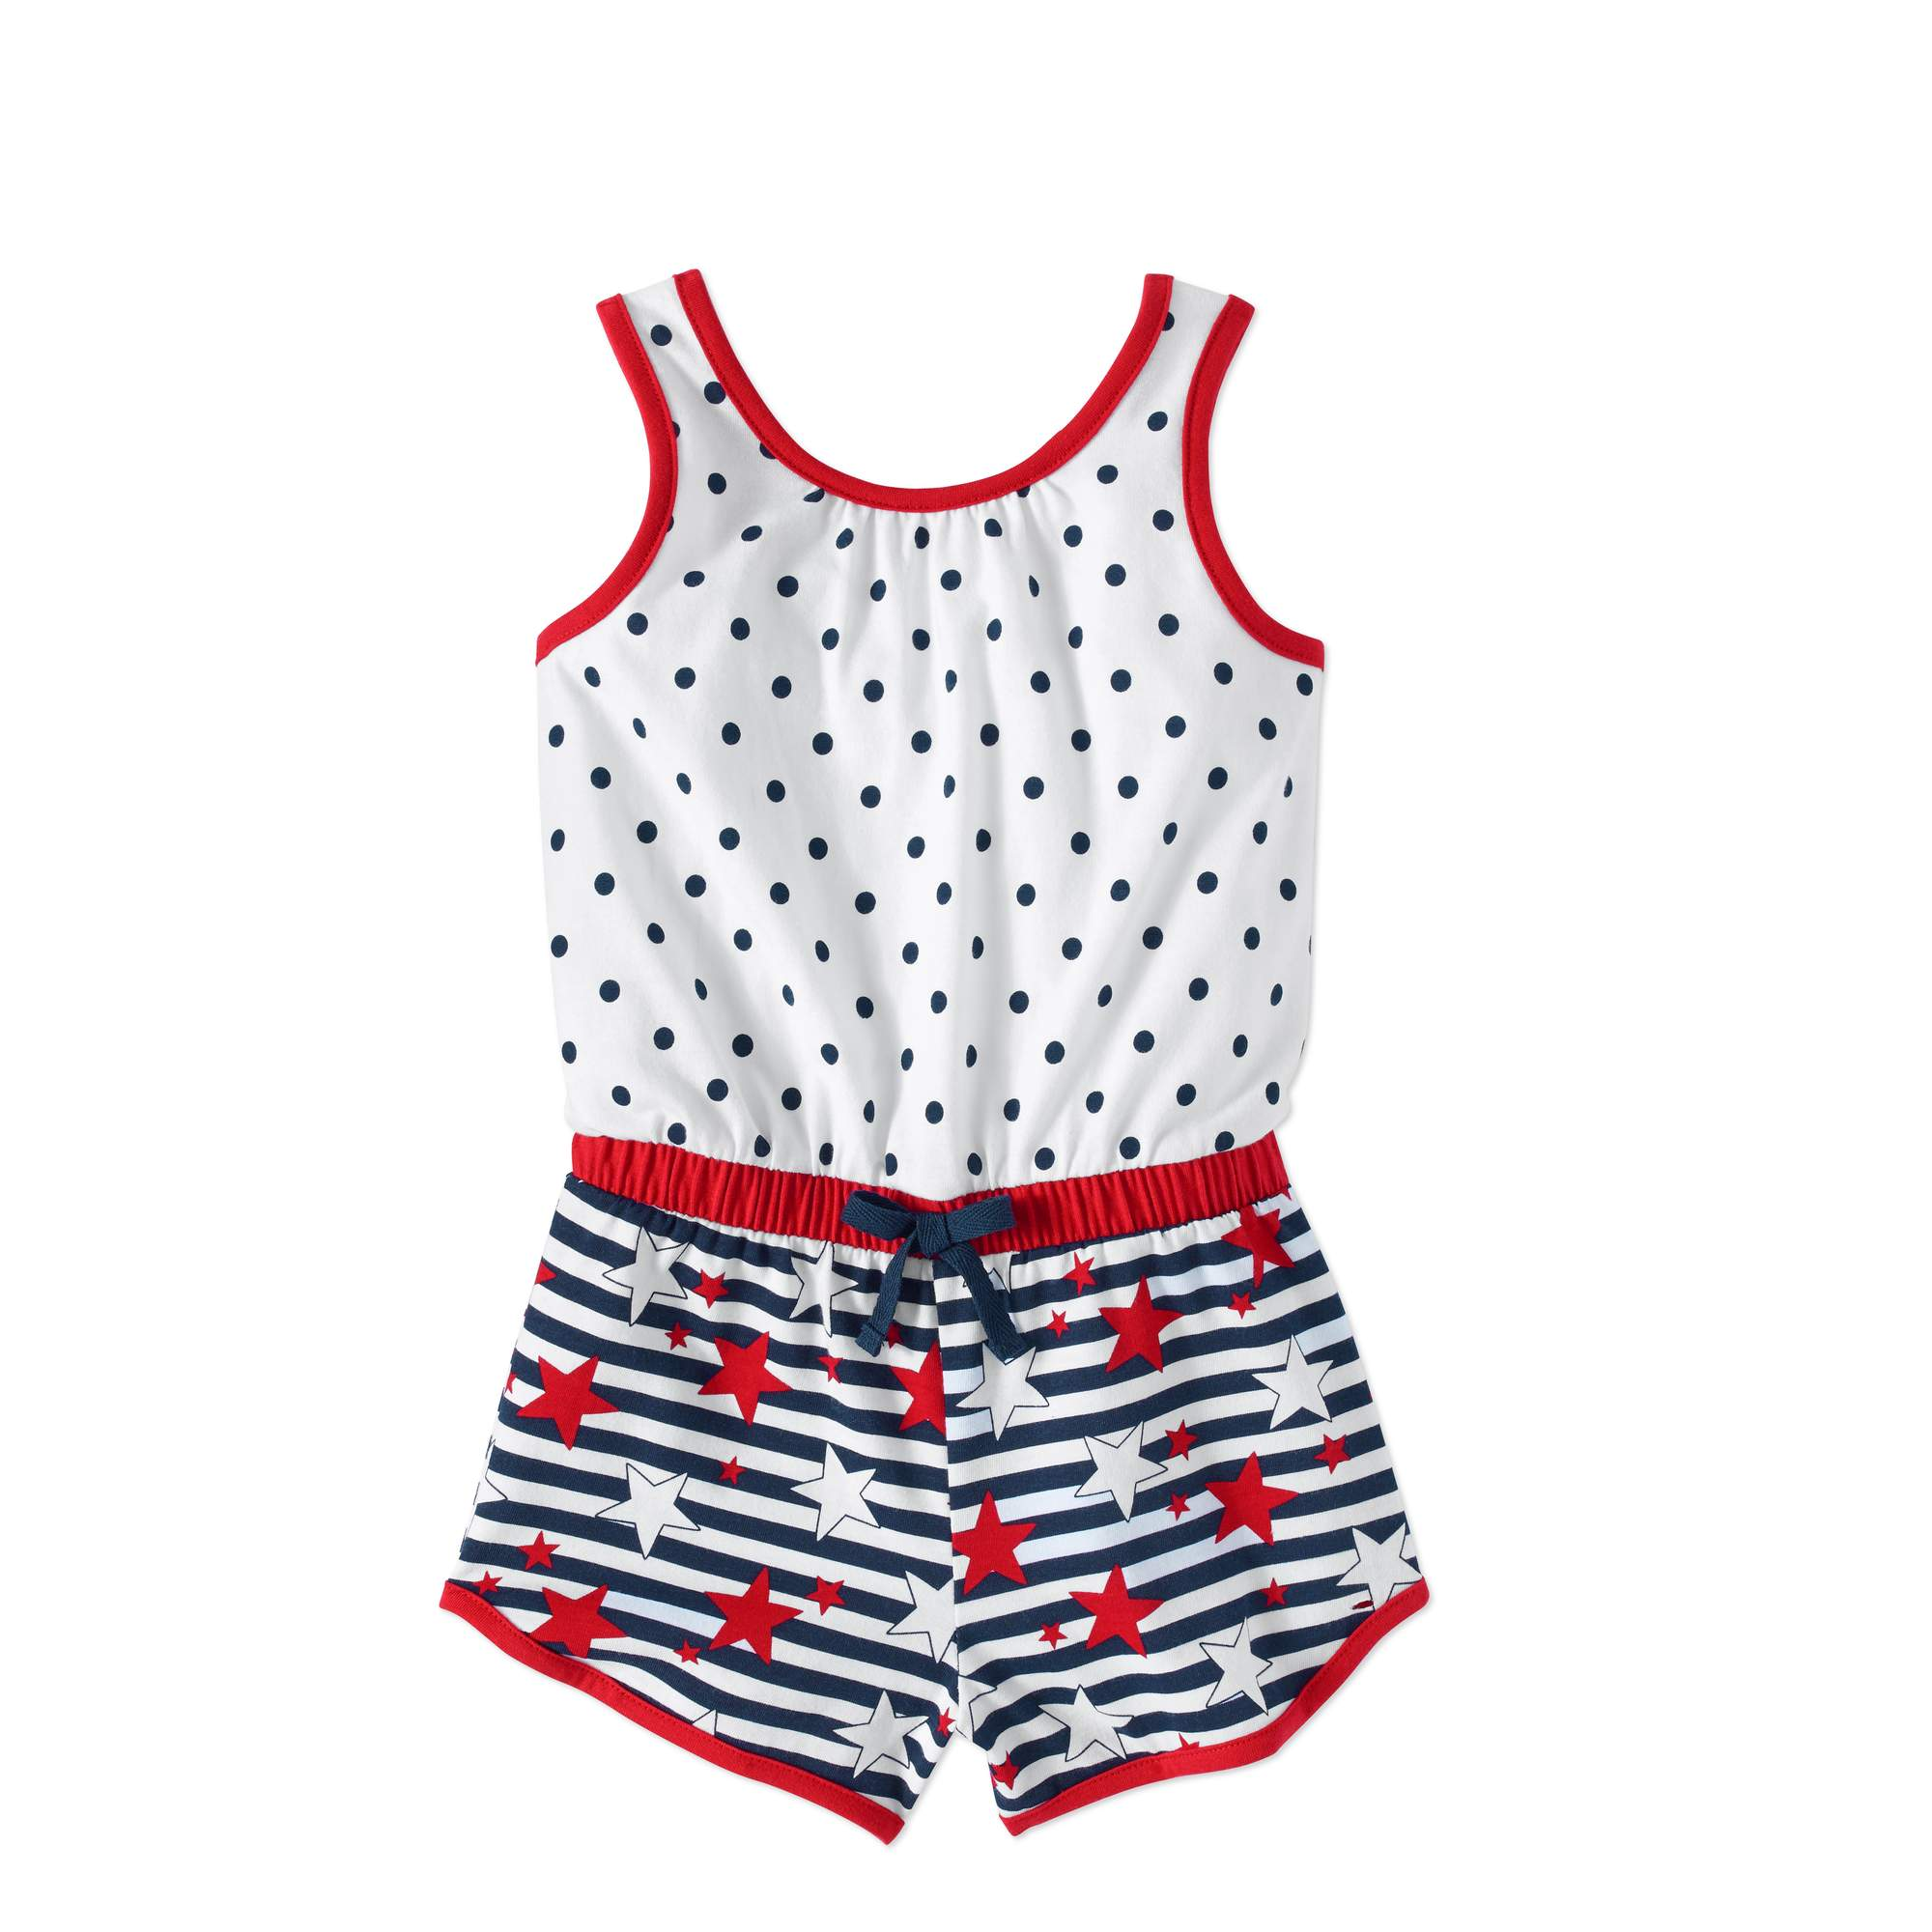 Healthtex Toddler Girls' Mixed Print Sleeveless Knit Romper